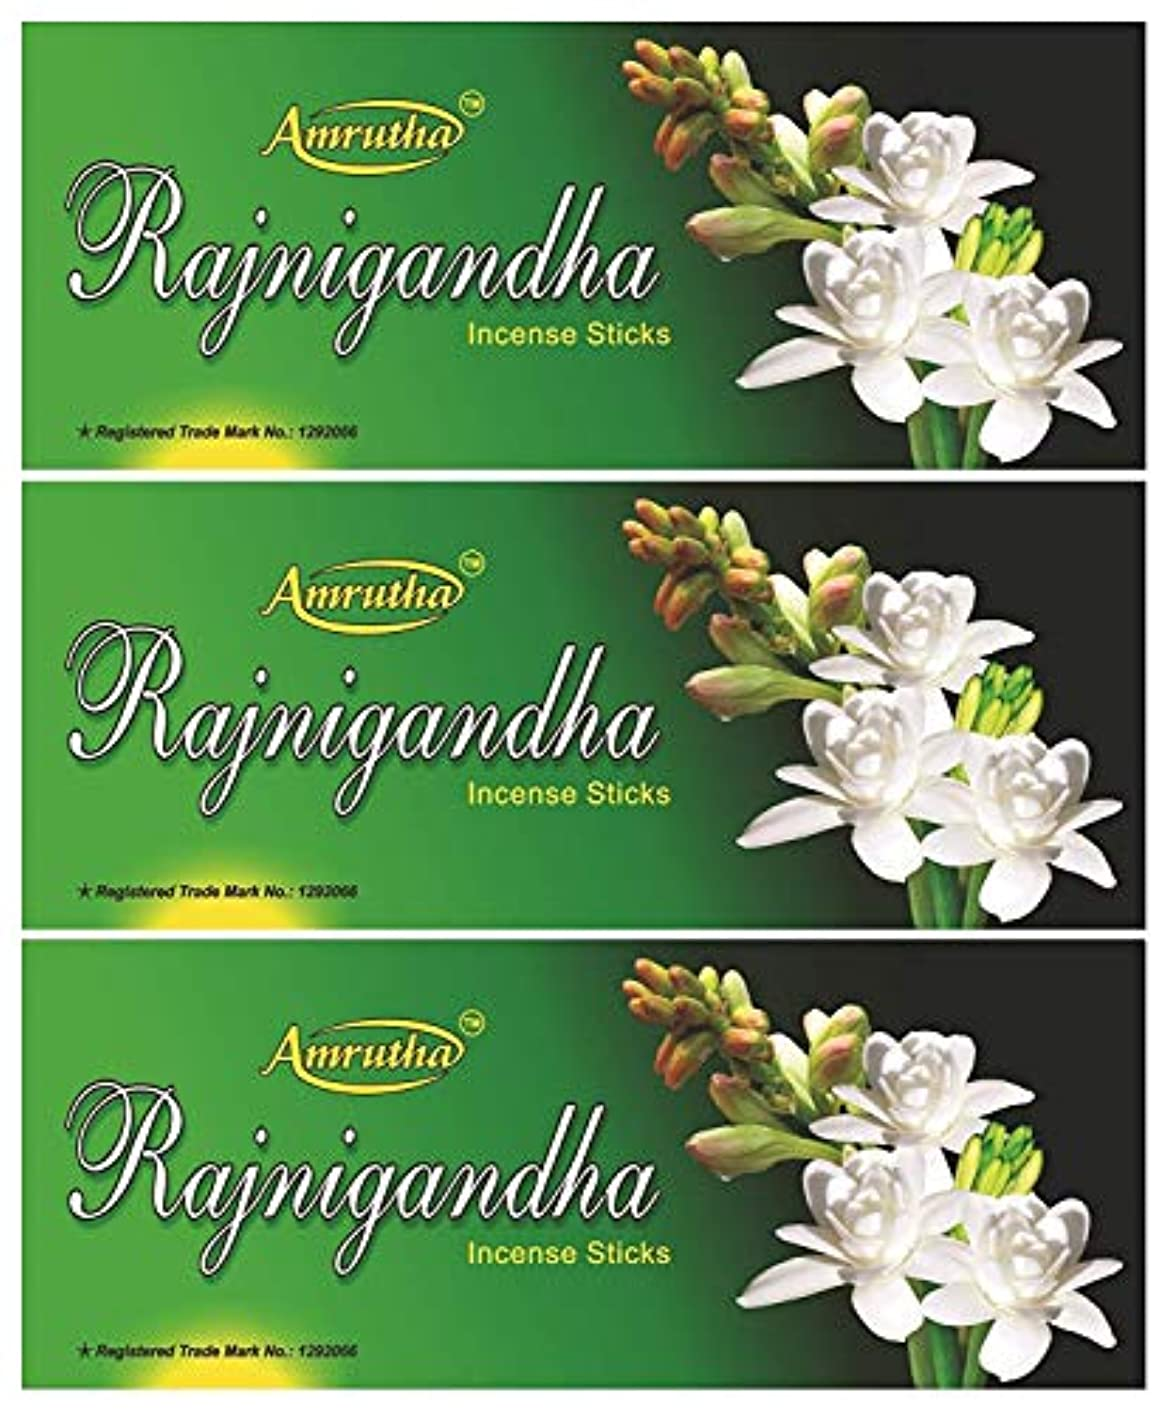 ずらす彼精通したAMRUTHA PREMIUM INCENSE STICKS Rajnigandha Incense Sticks (100g, Black) - Pack of 3